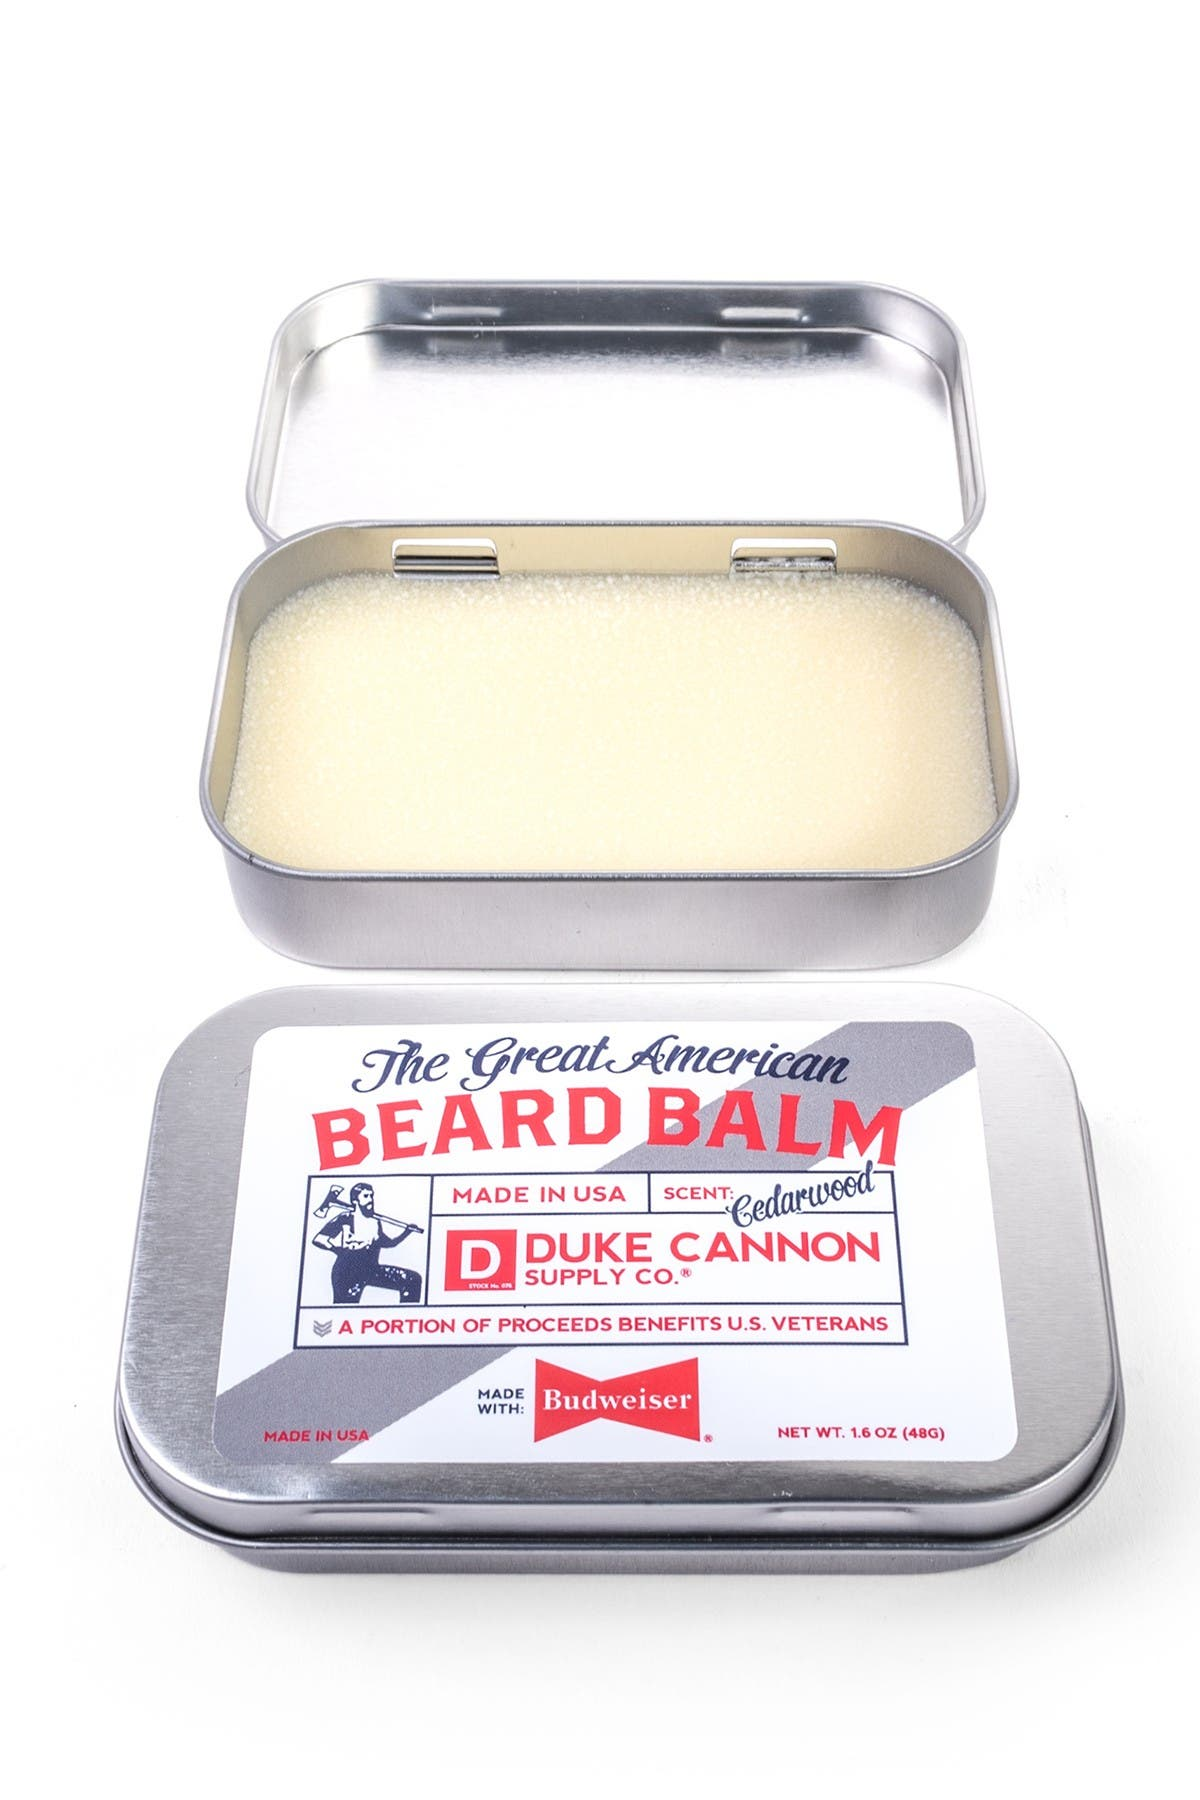 Image of DUKE CANNON Great American Beard Balm - Made with Budweiser